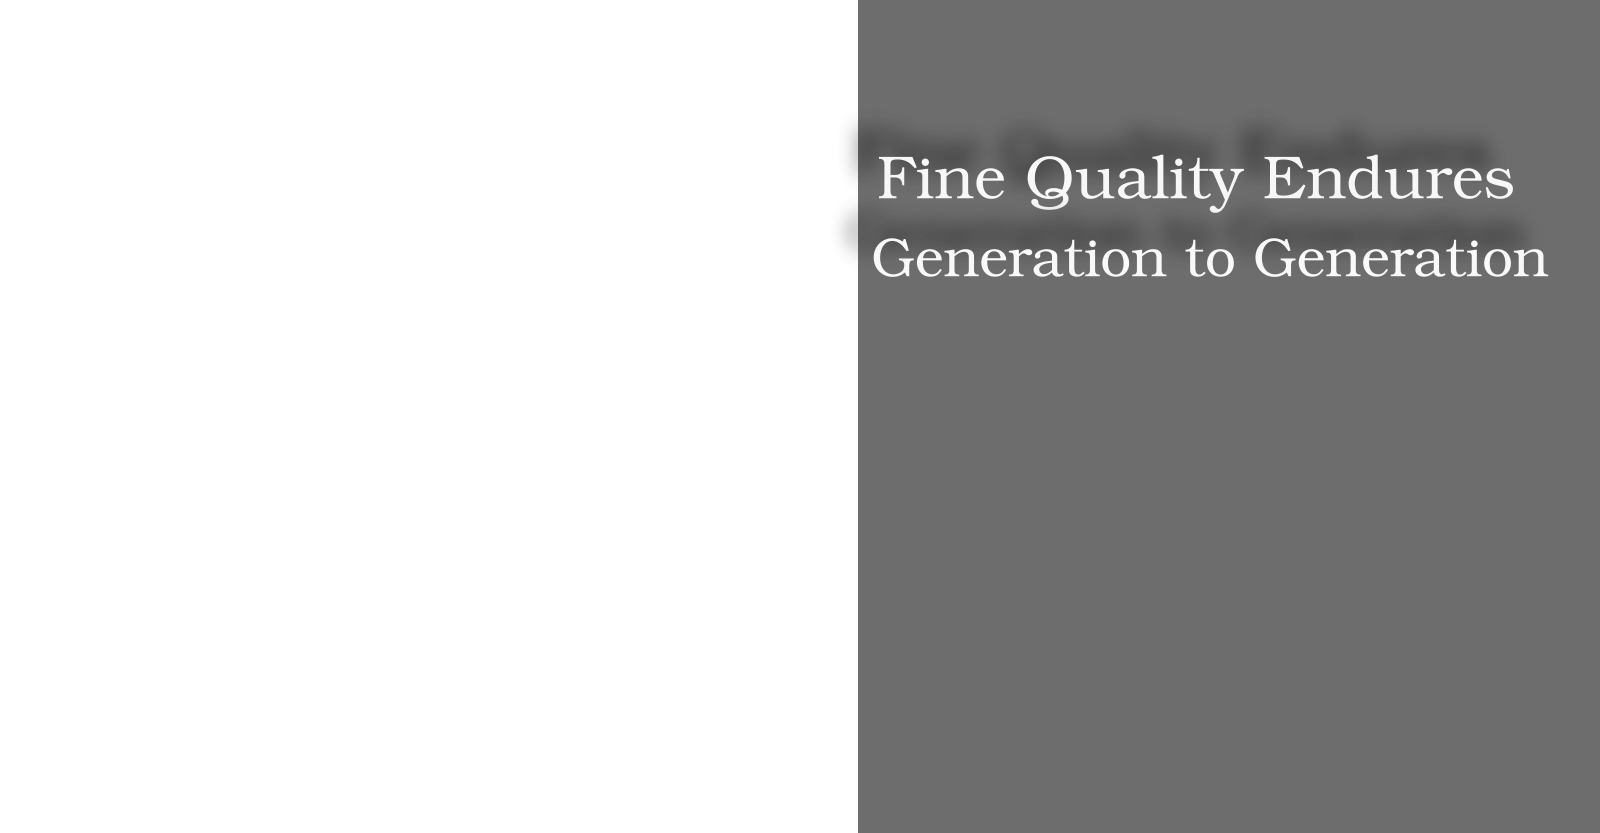 Fine Quality Endures